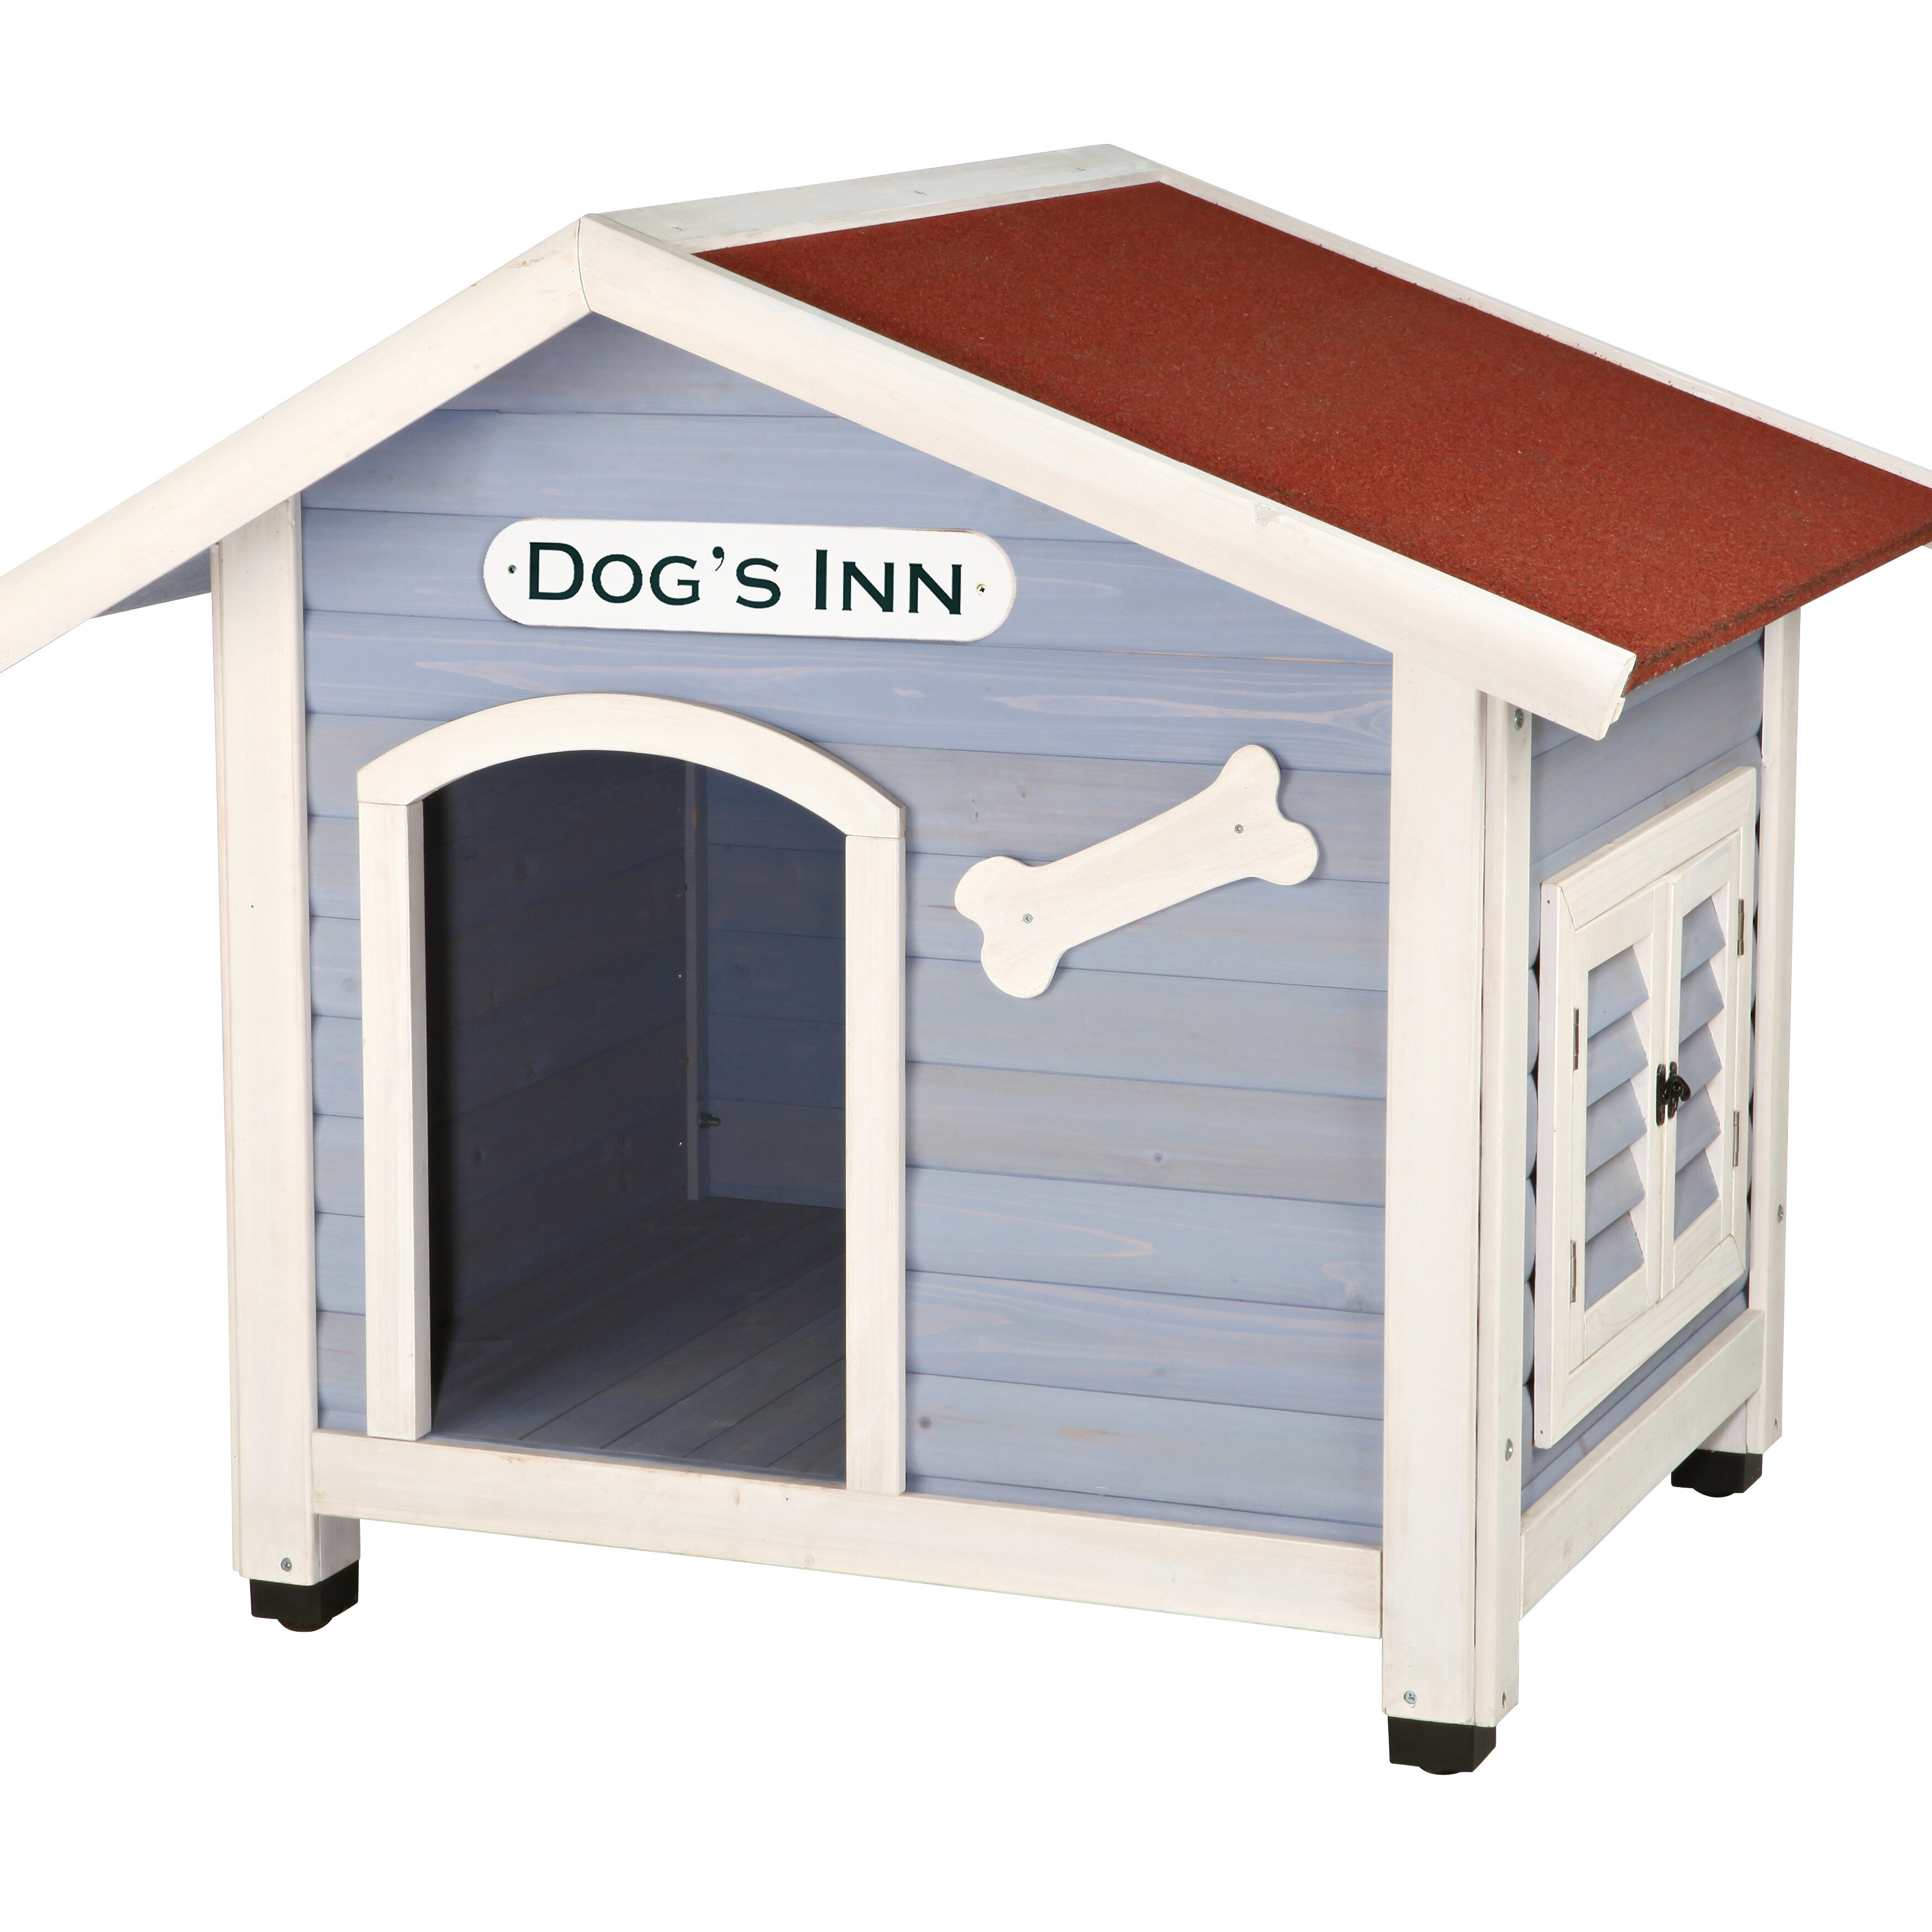 Trixie dog 39 s inn dog house reviews wayfair for Caseta perro bricodepot